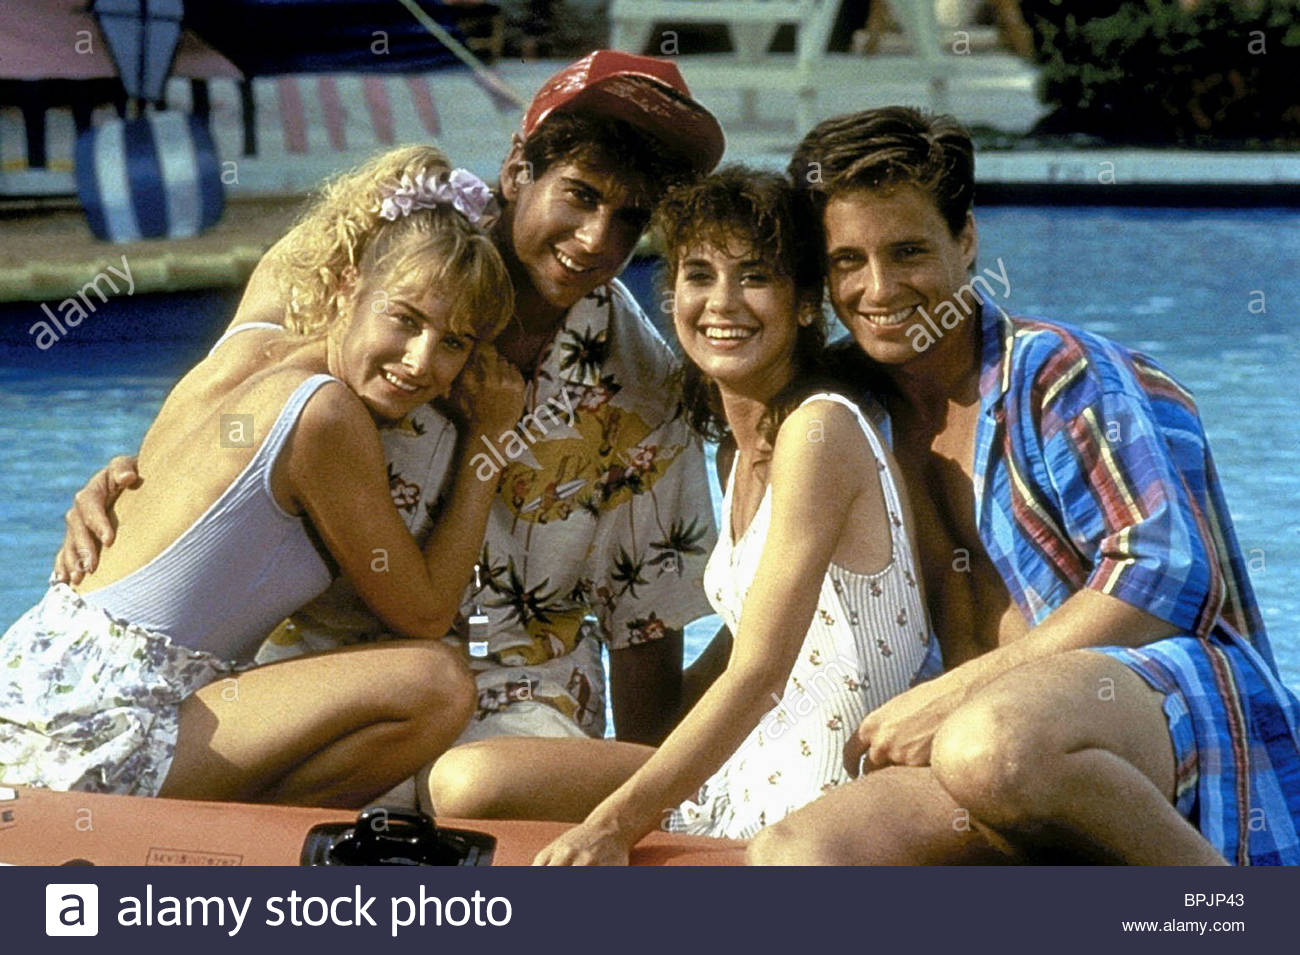 Caddyshack 2 banner free download Caddyshack Ii Stock Photos & Caddyshack Ii Stock Images - Alamy banner free download